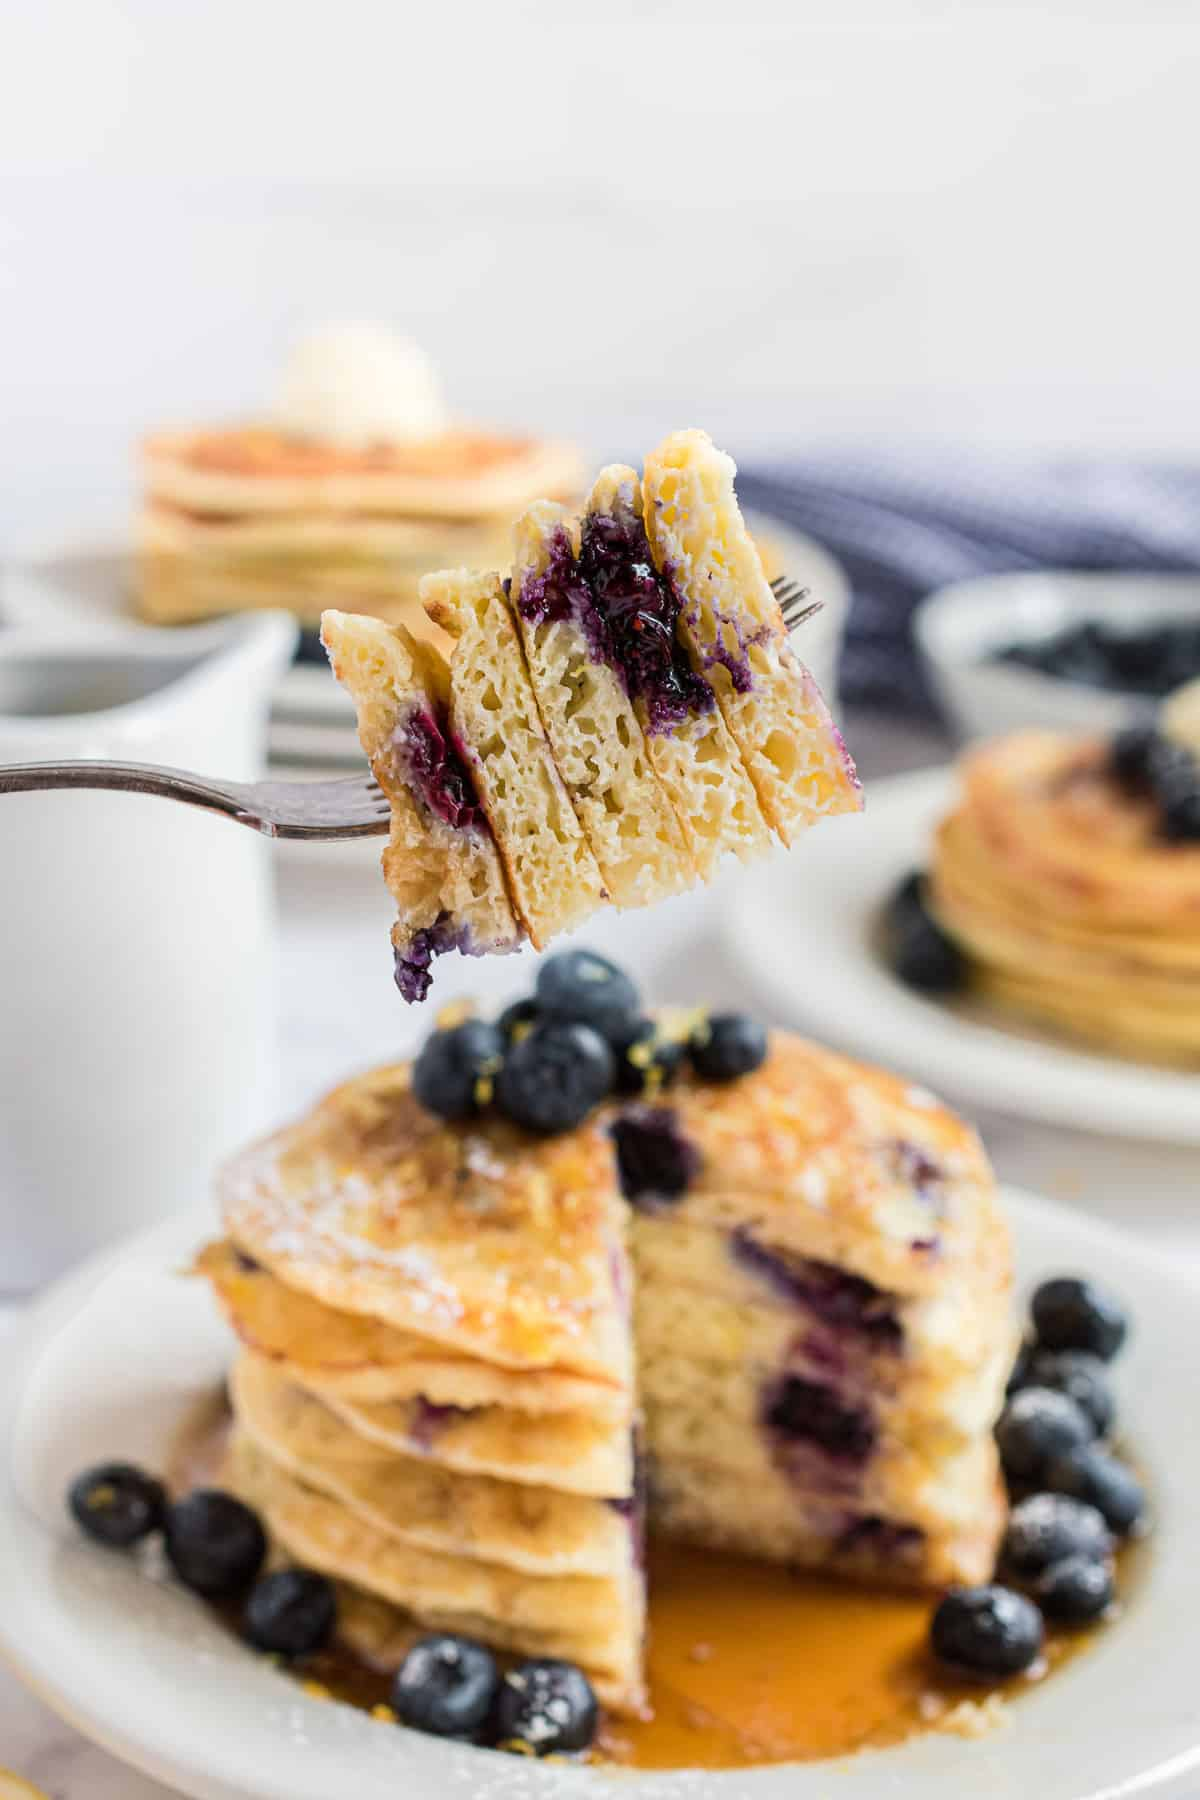 Pancakes on a fork to show texture.